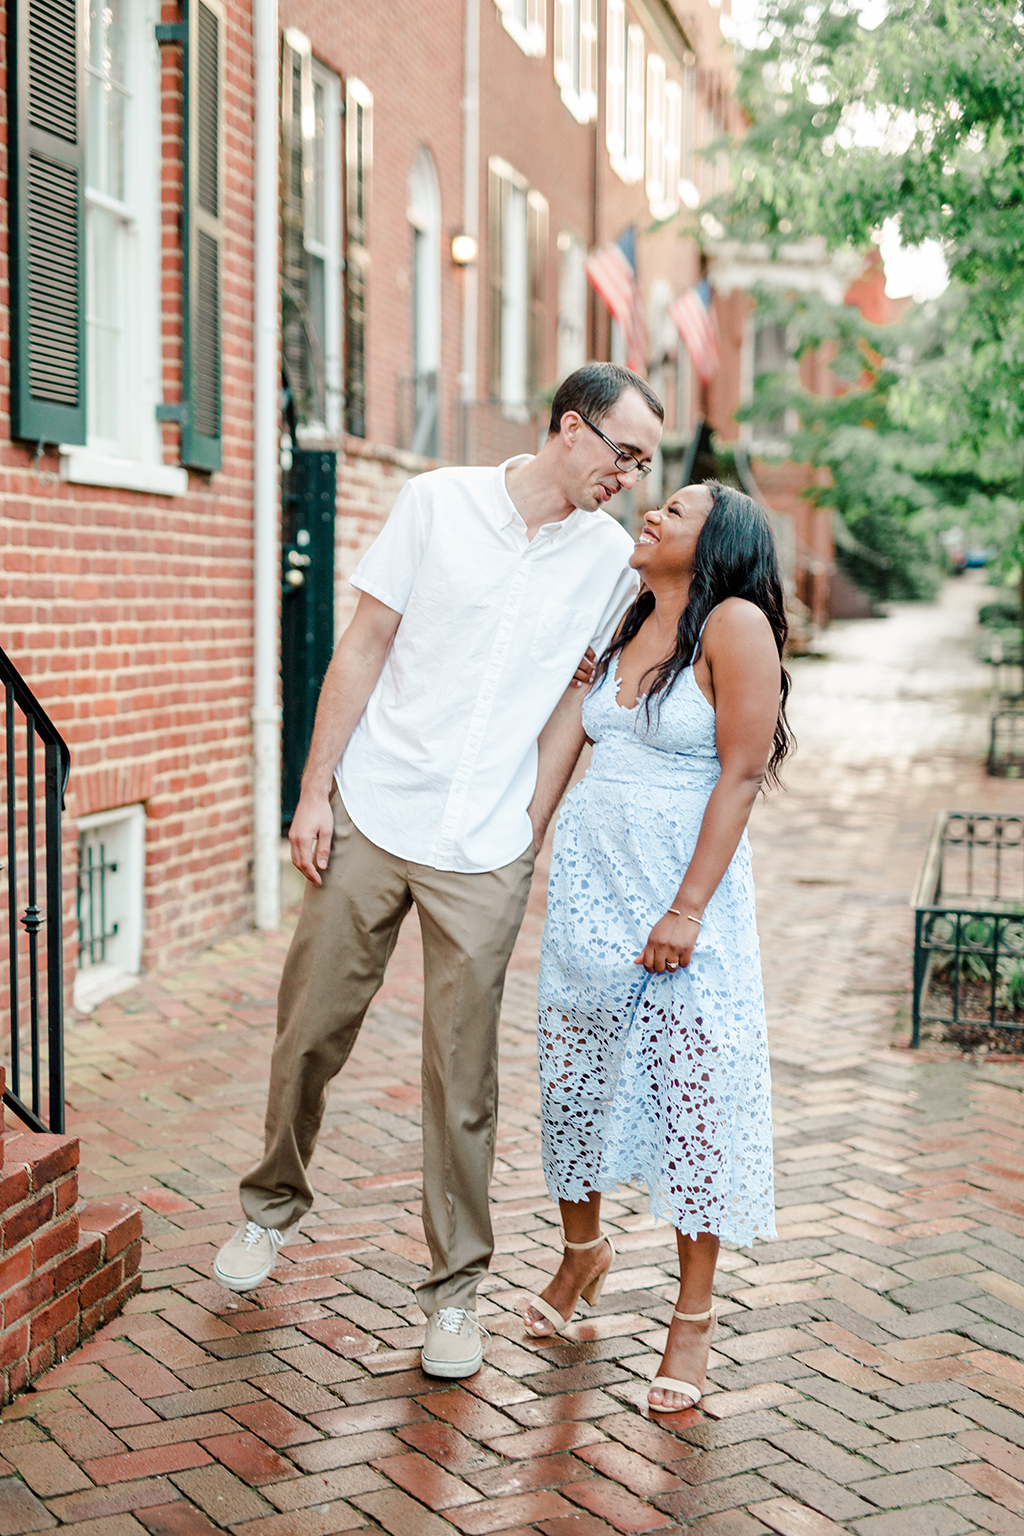 Magic Hour Engagement Photoshoot at the Historic Georgetown Canals and Waterfront Brooke McClure Daniel Scott